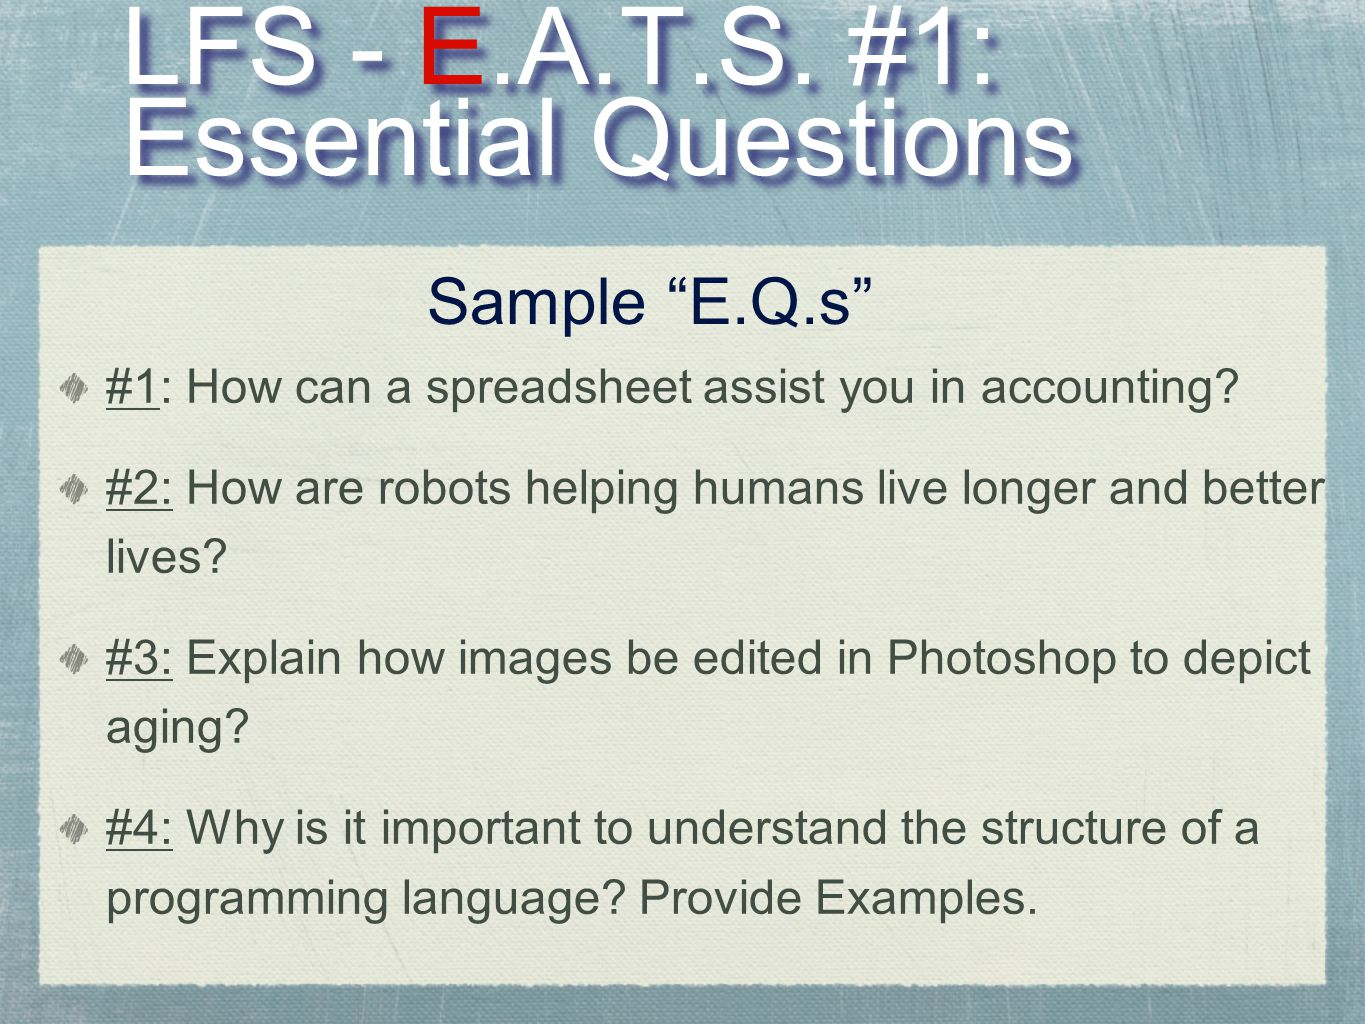 LFS - E.A.T.S. #1: Essential Questions #1: How can a spreadsheet assist you in accounting.